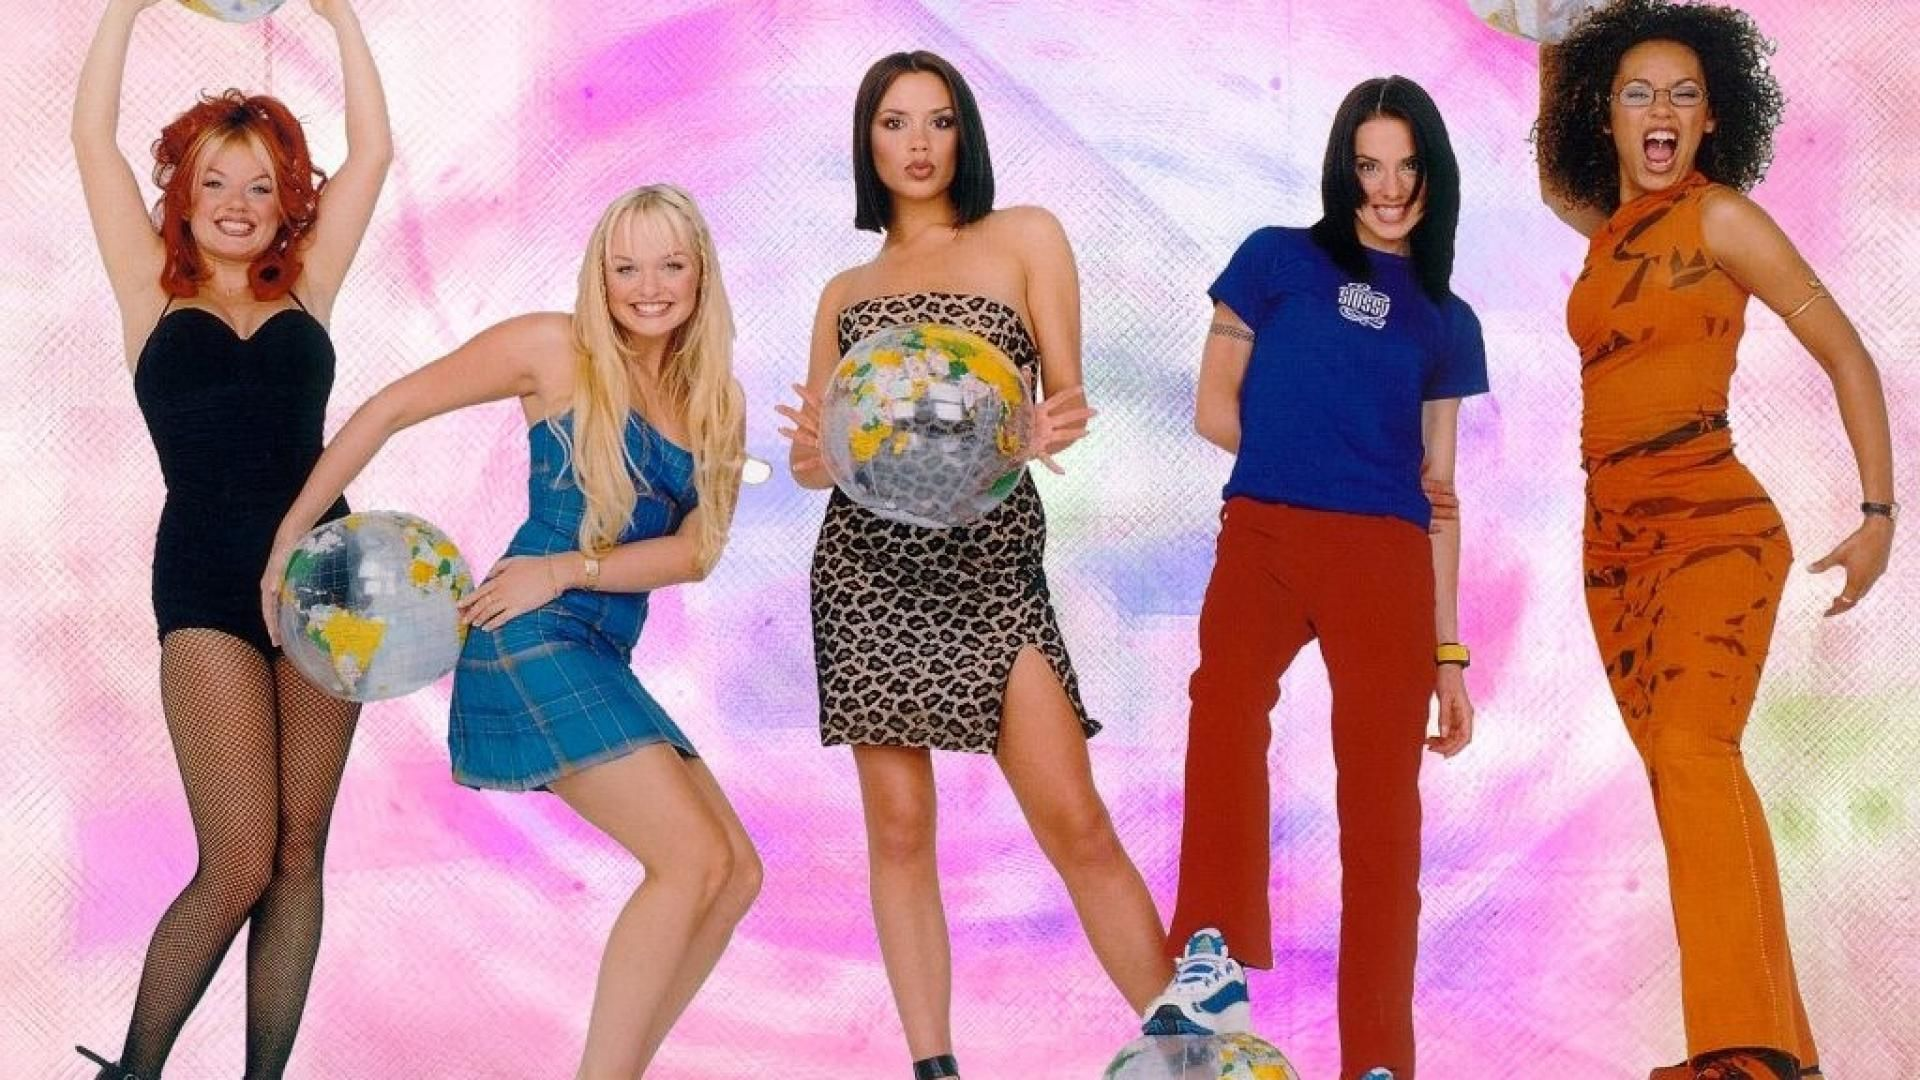 15 spice girls facts you didn't know that will spice up